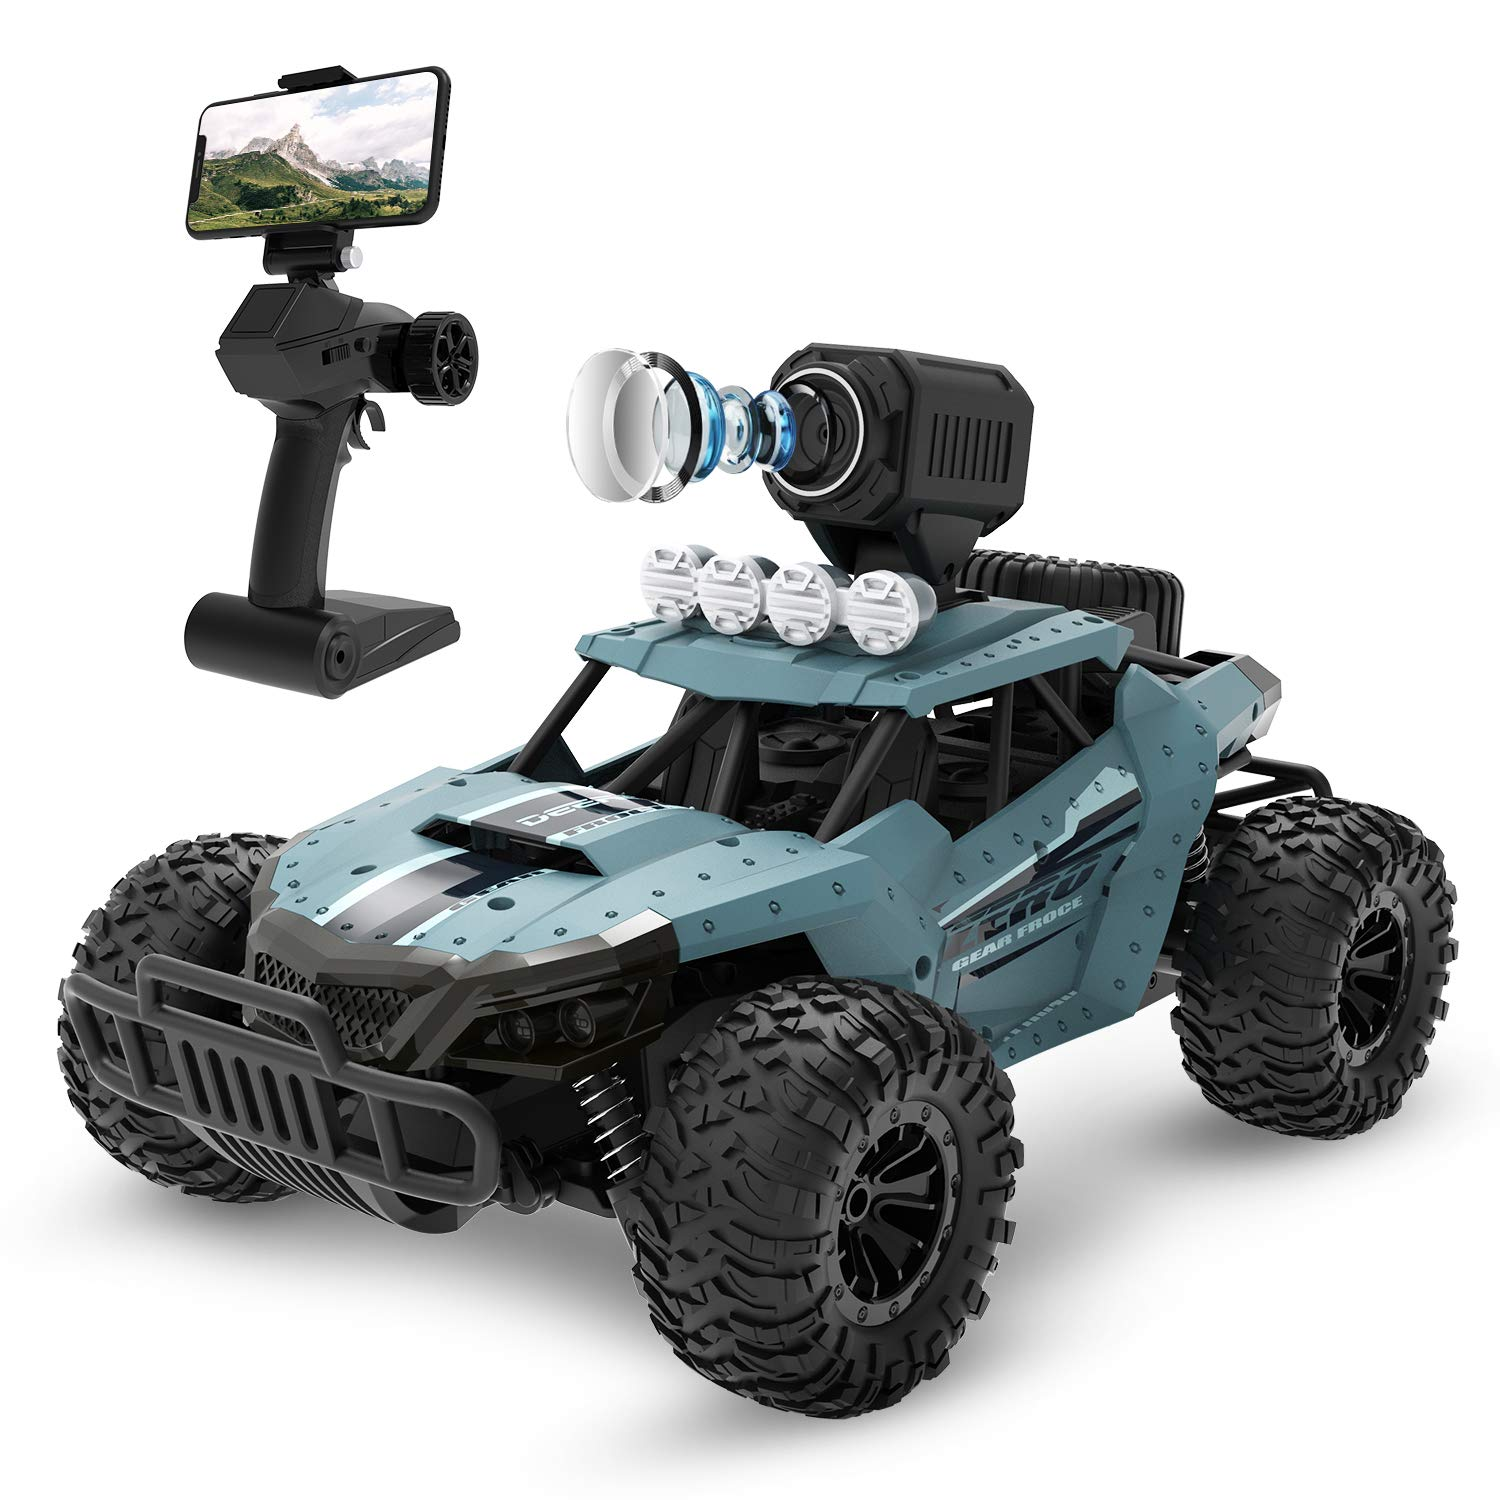 DEERC RC Cars DE36W Remote Control Car with 720P HD FPV Camera, 1/16 Scale Off-Road Remote Control Truck, High Speed Monster Trucks for Adults Kids, All...